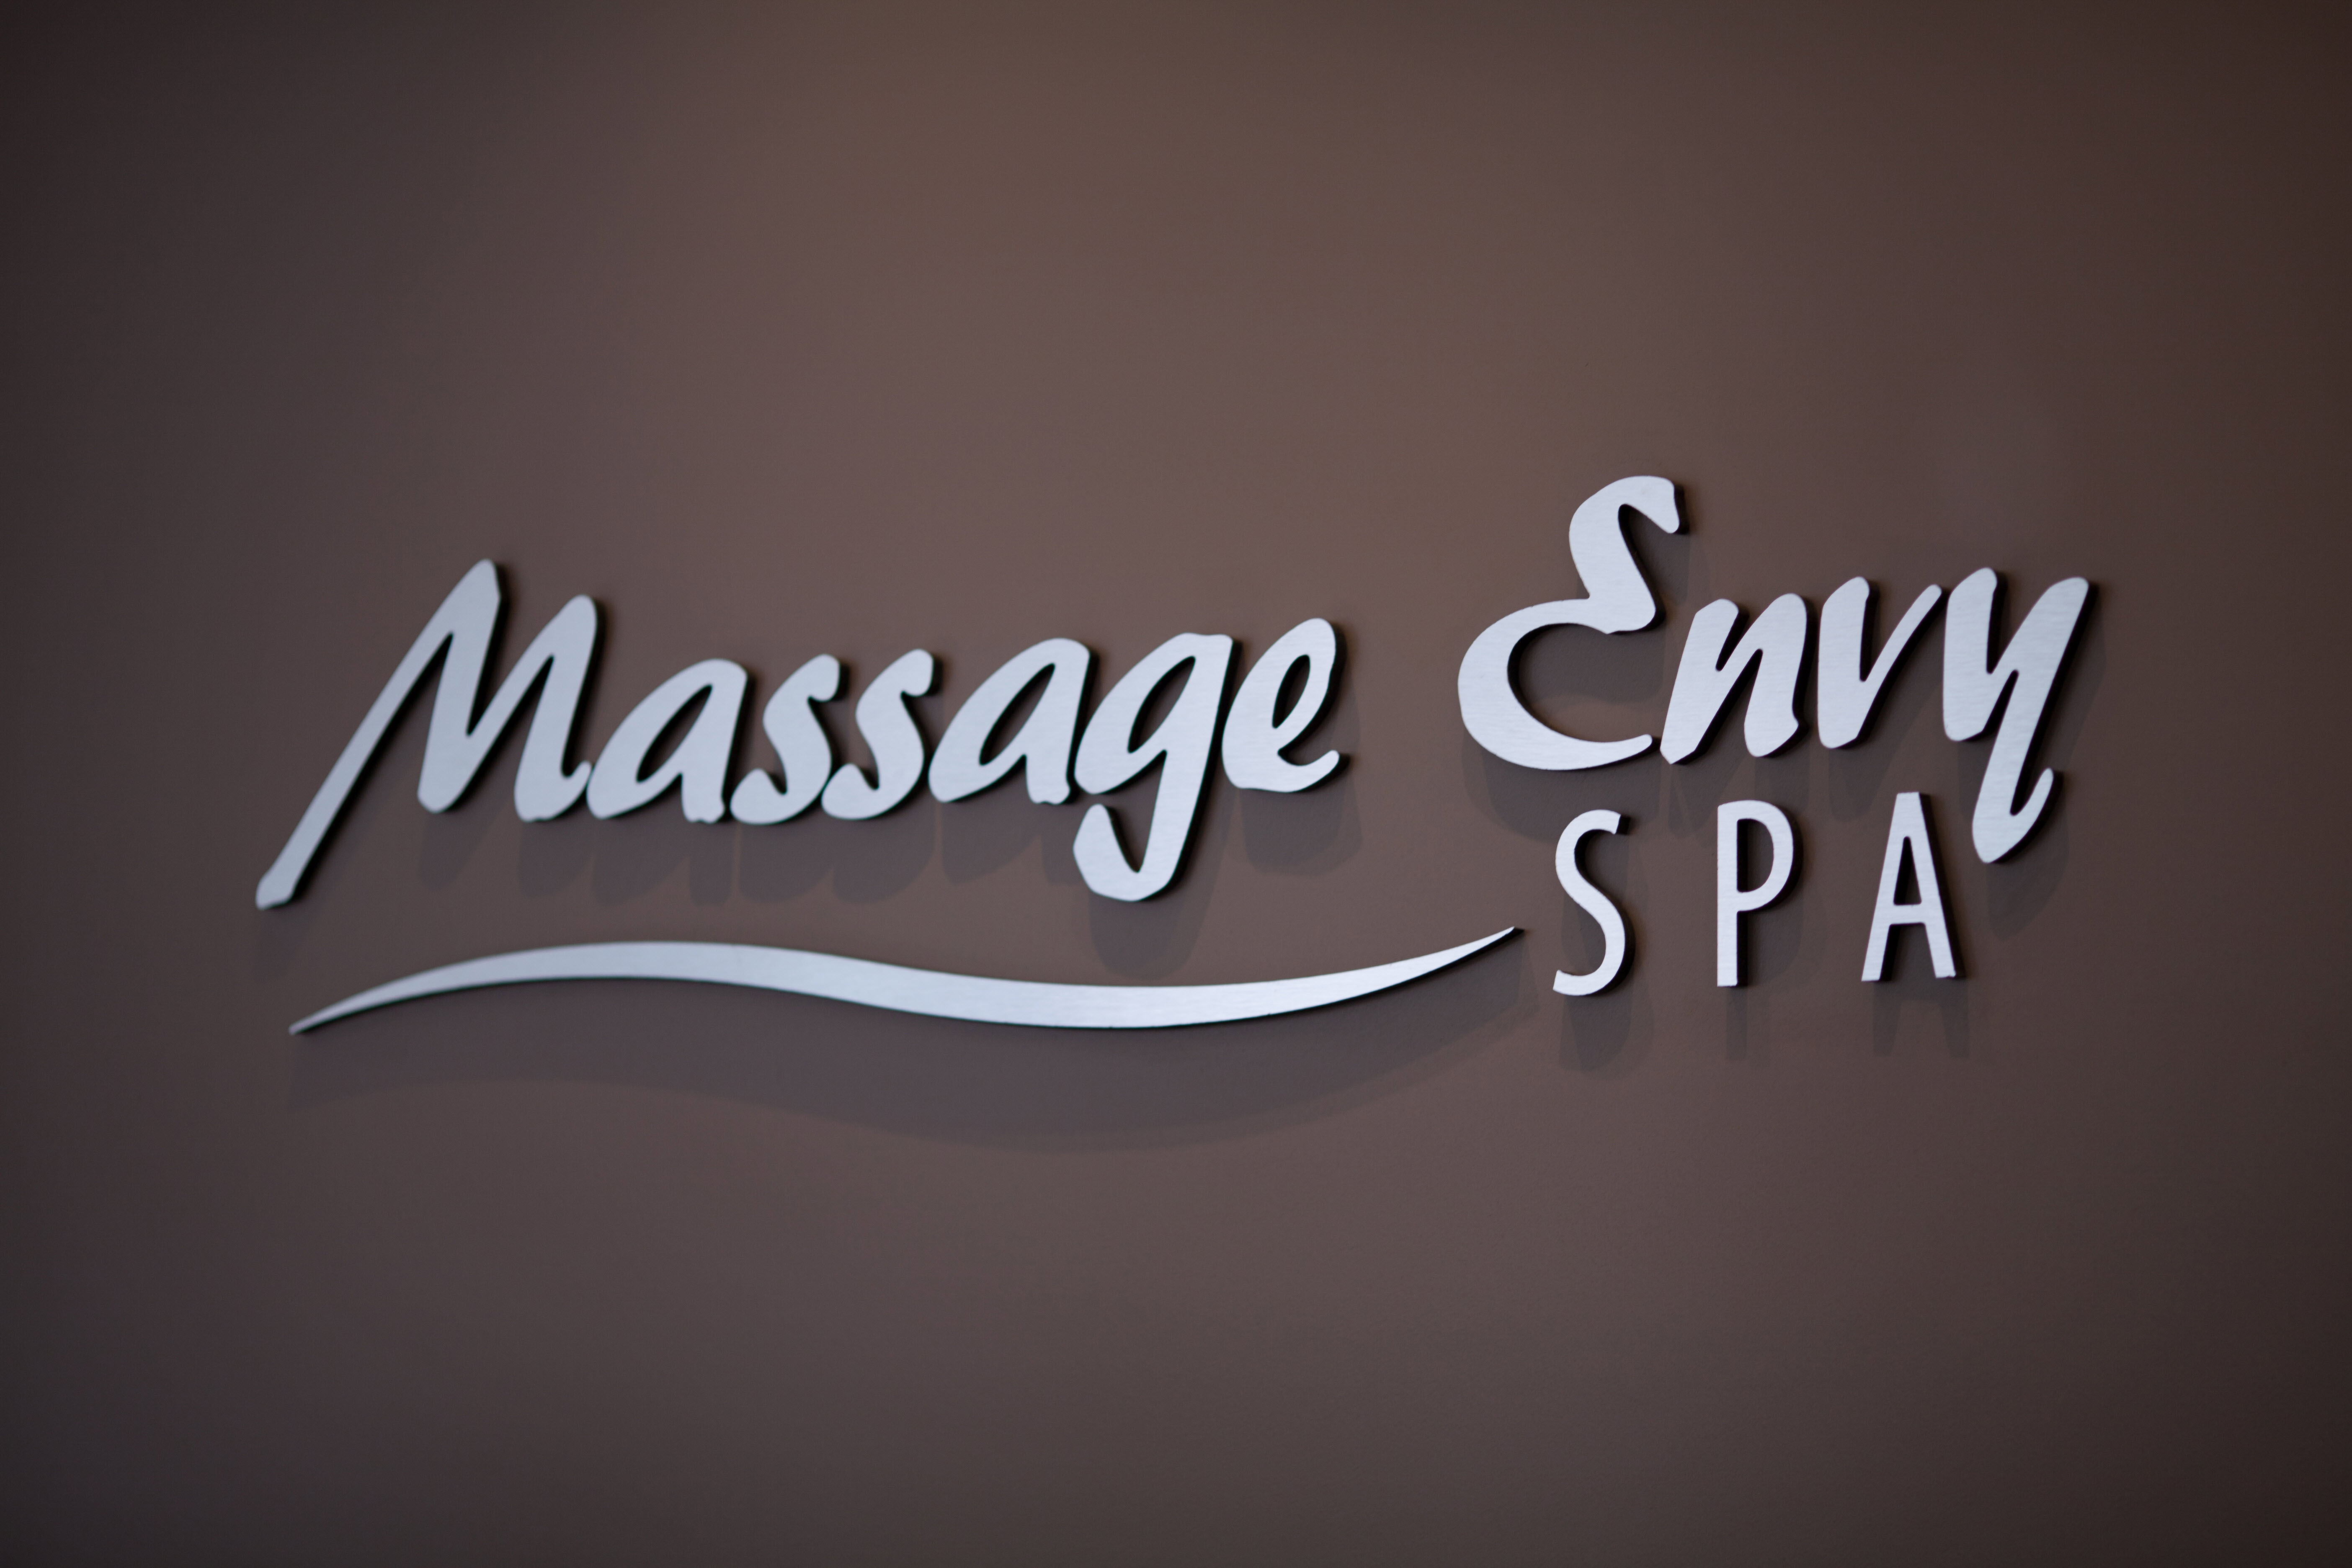 Massage Envy Spa - Fayetteville - AR East